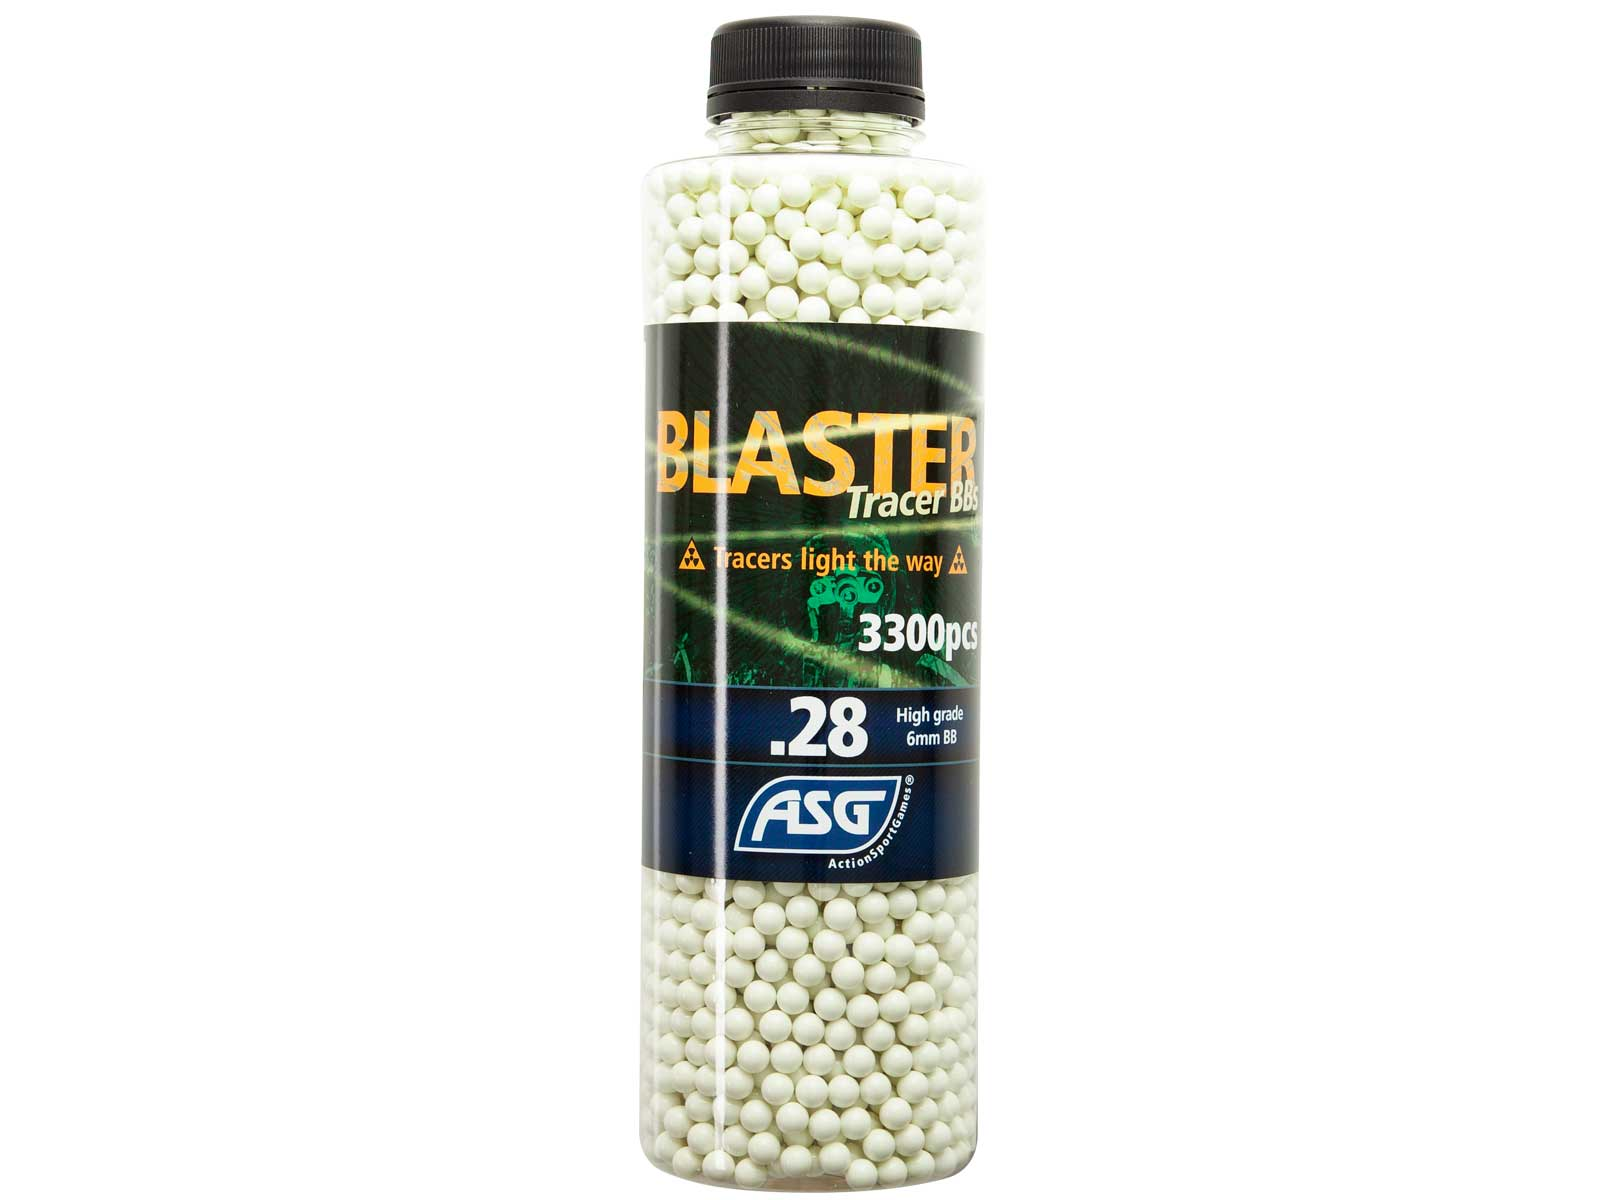 Blaster Tracer 0,28g Airsoft BB in green color -3300 pcs. in bottle product image